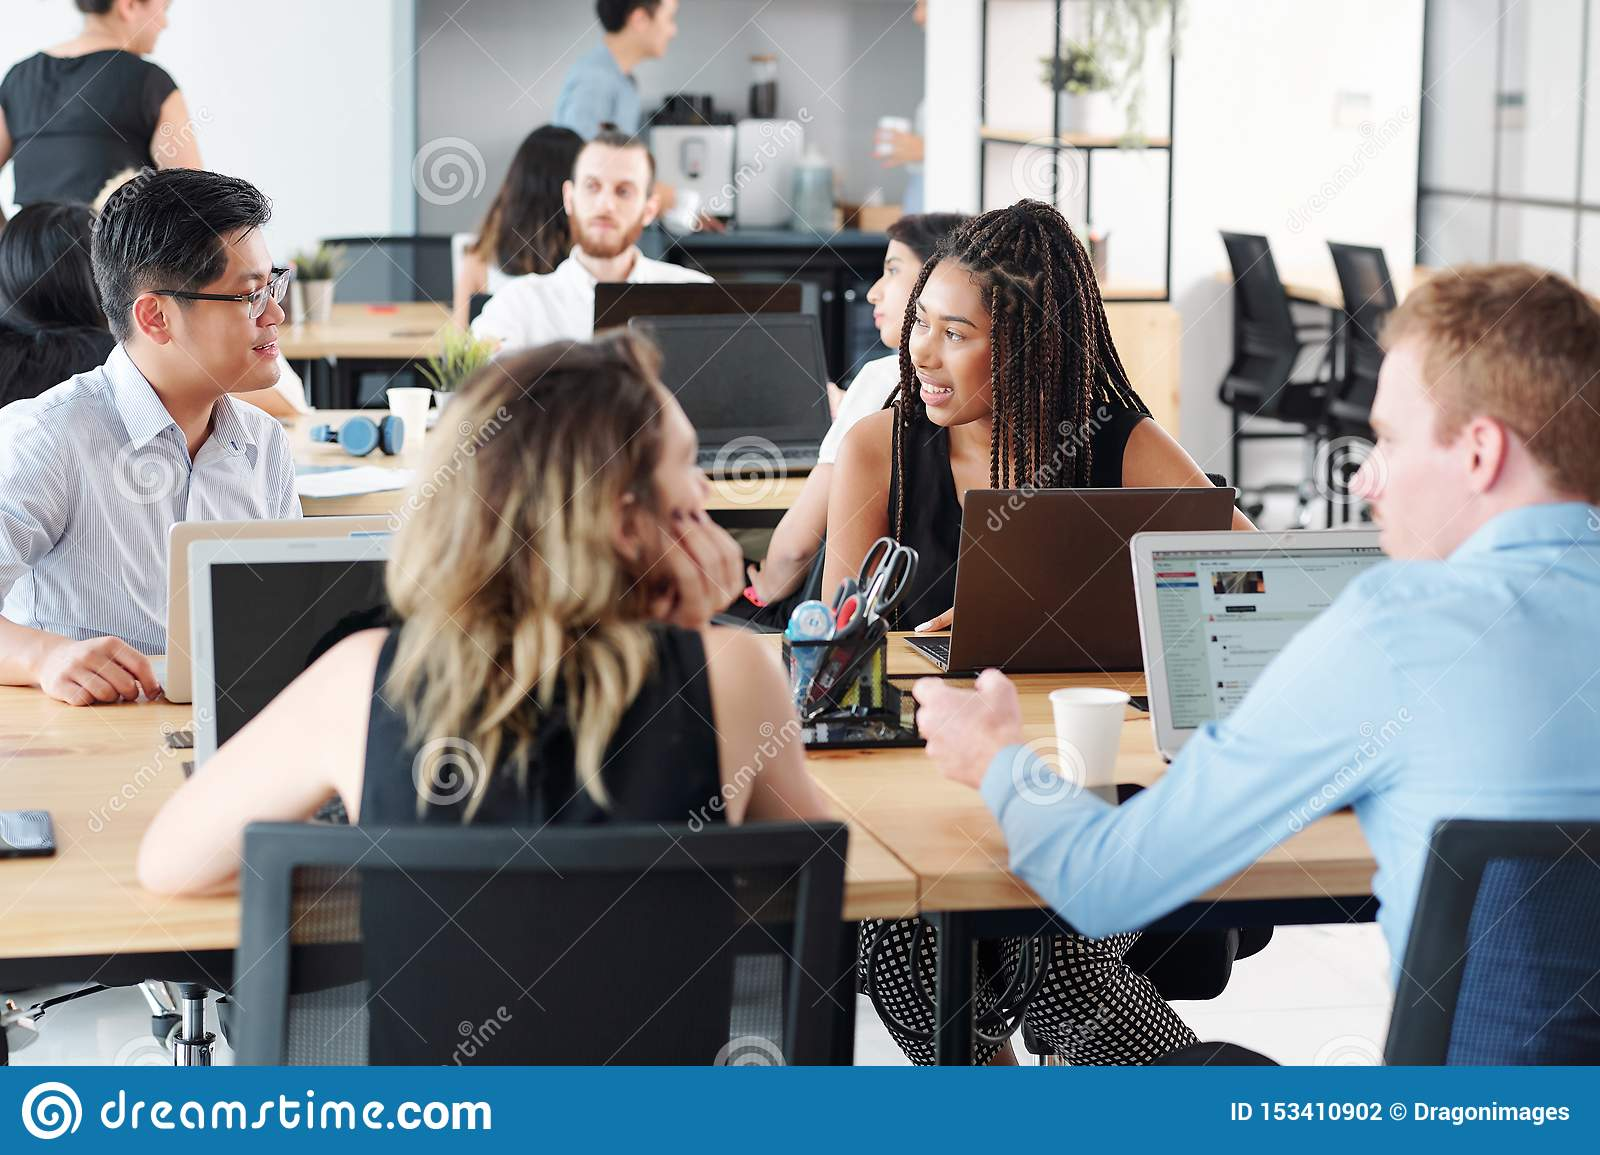 9,476 People Working Computers Office Photos - Free & Royalty-Free Stock  Photos from Dreamstime